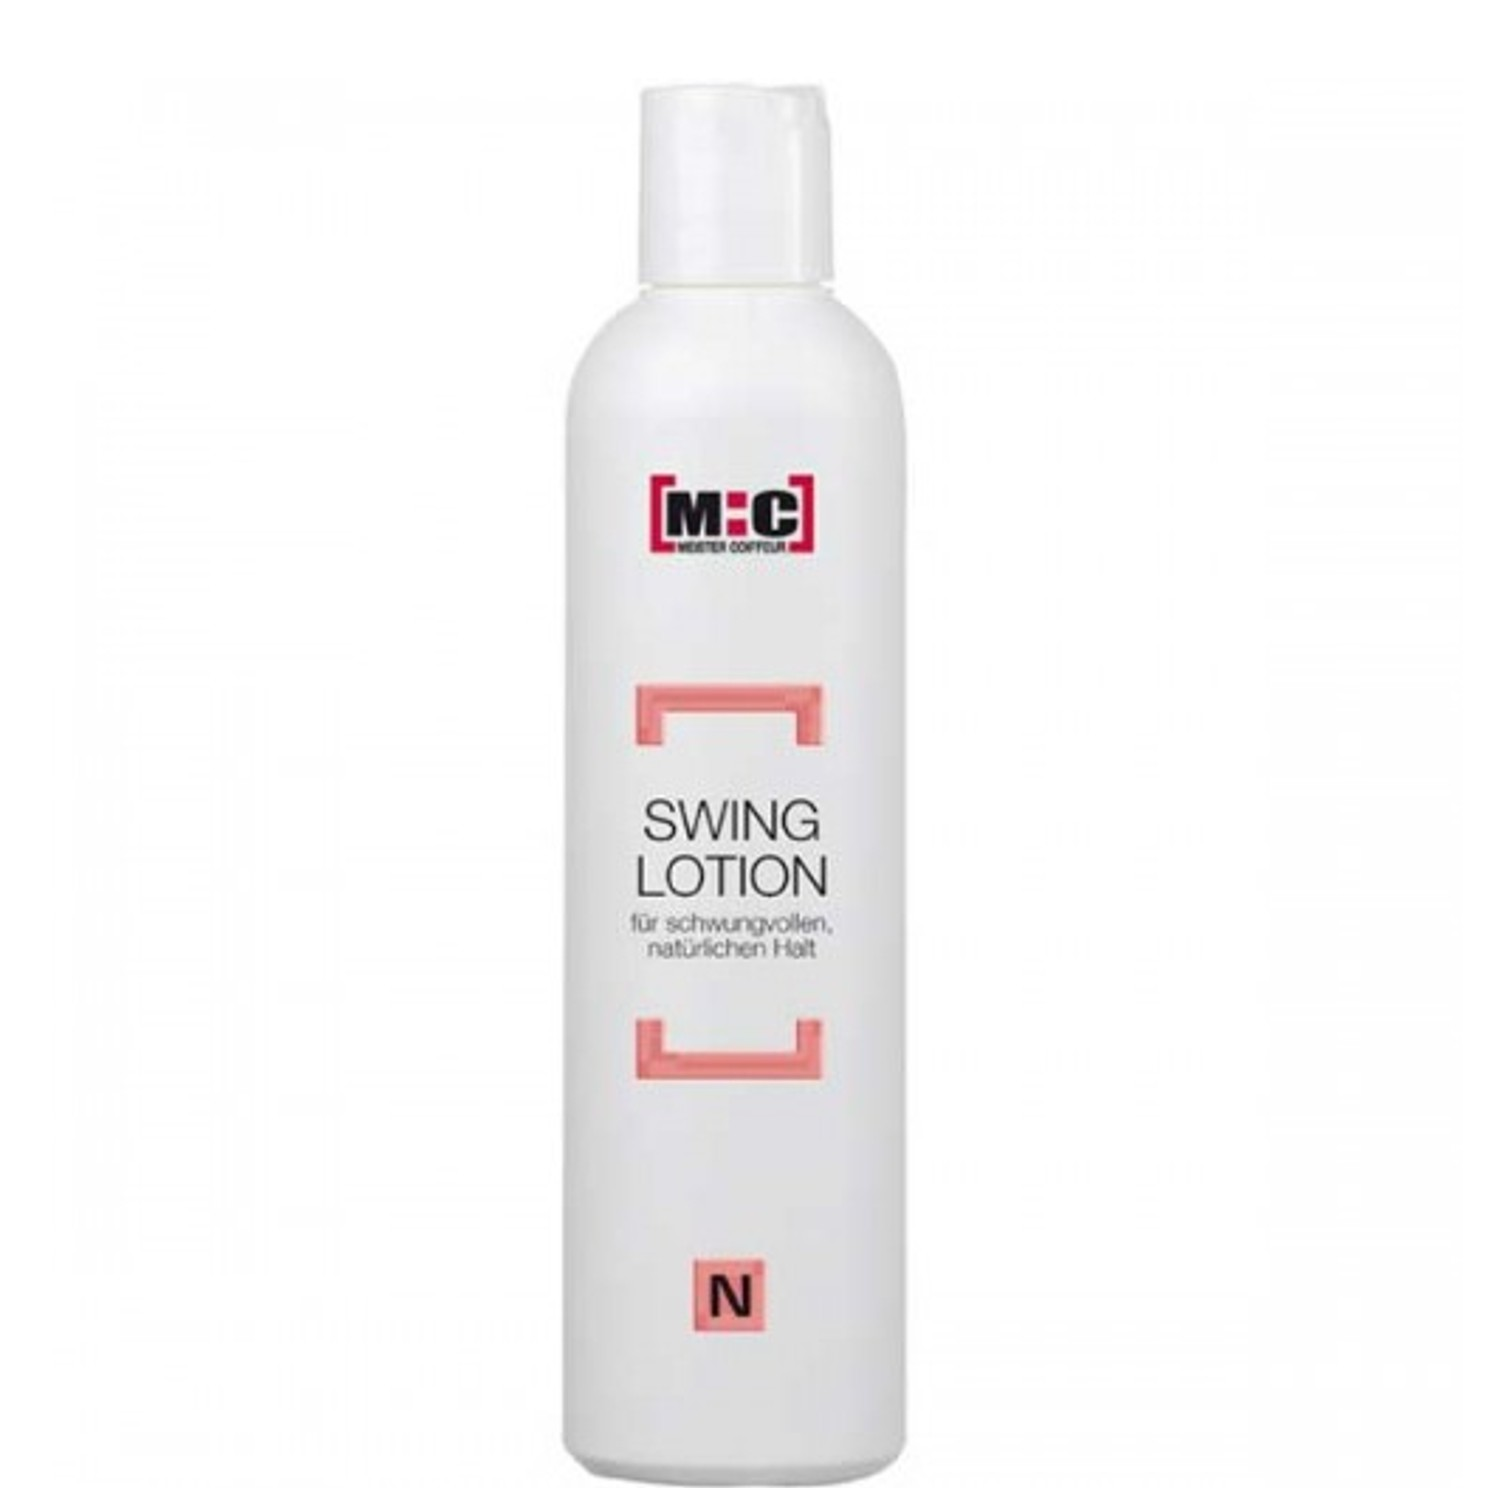 Meister Coiffeur M:C Swing Lotion N 250 ml